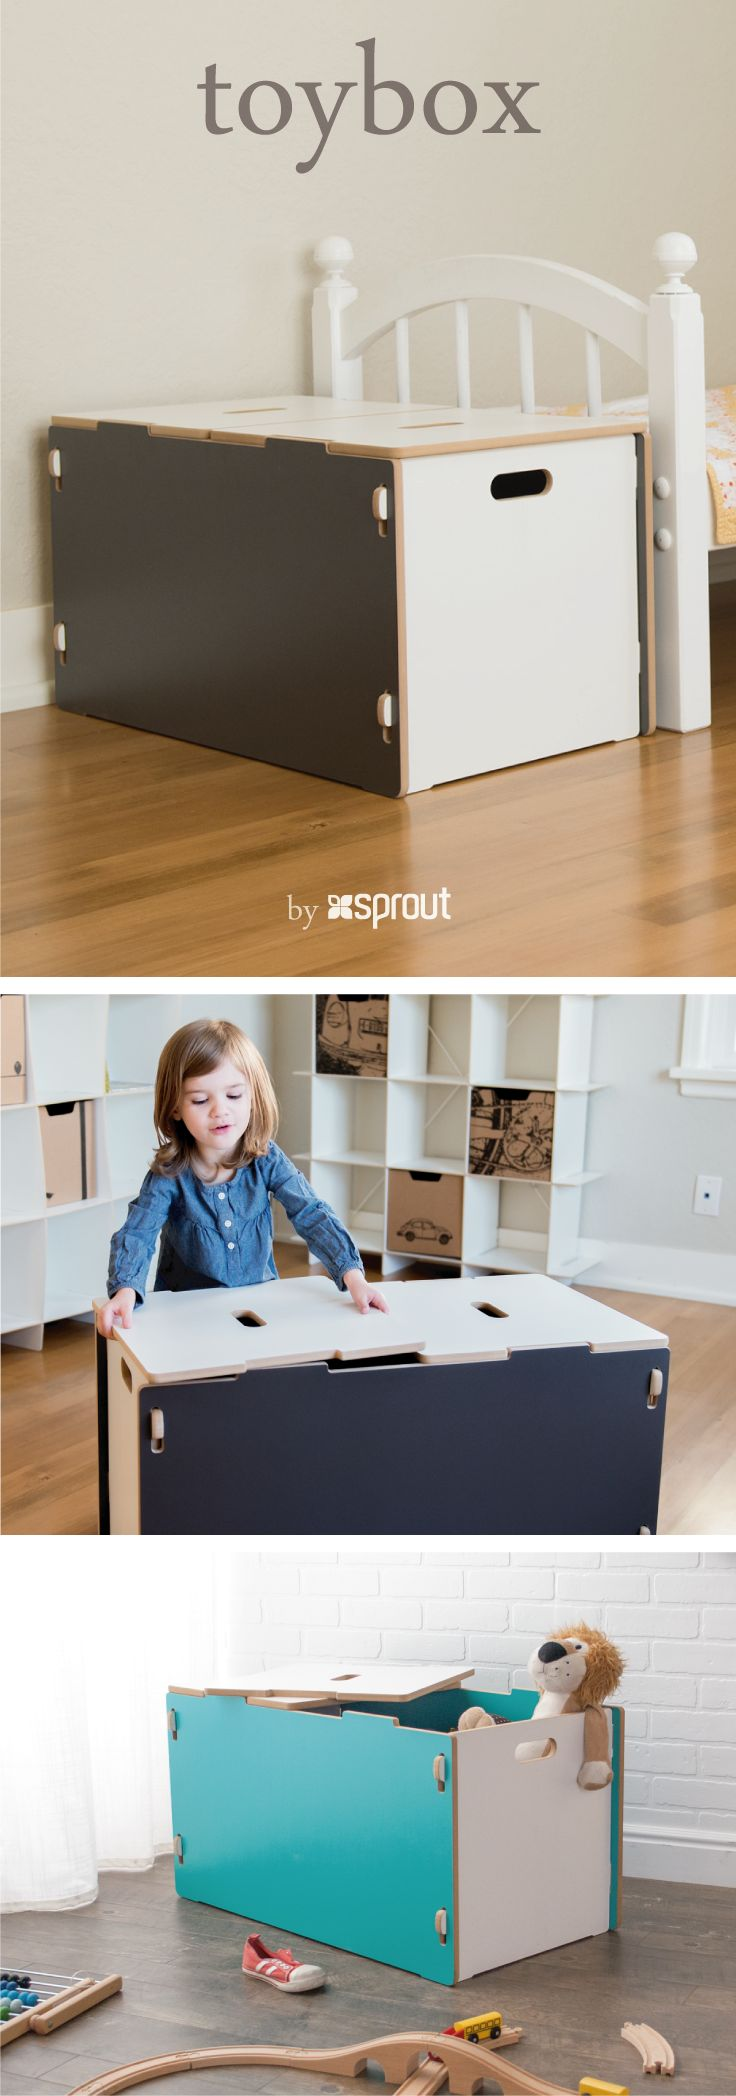 Keep toys out from underfoot with a fun modern kids toy box. Dolls, animals, books, trucks, boats, and more can all live happily together in Sprout's roomy kids toy chest.  It has pinch-free lids and rounded corners and edges to keep little fingers safe and happy.   Learn more about the wooden toy box at Sprout.